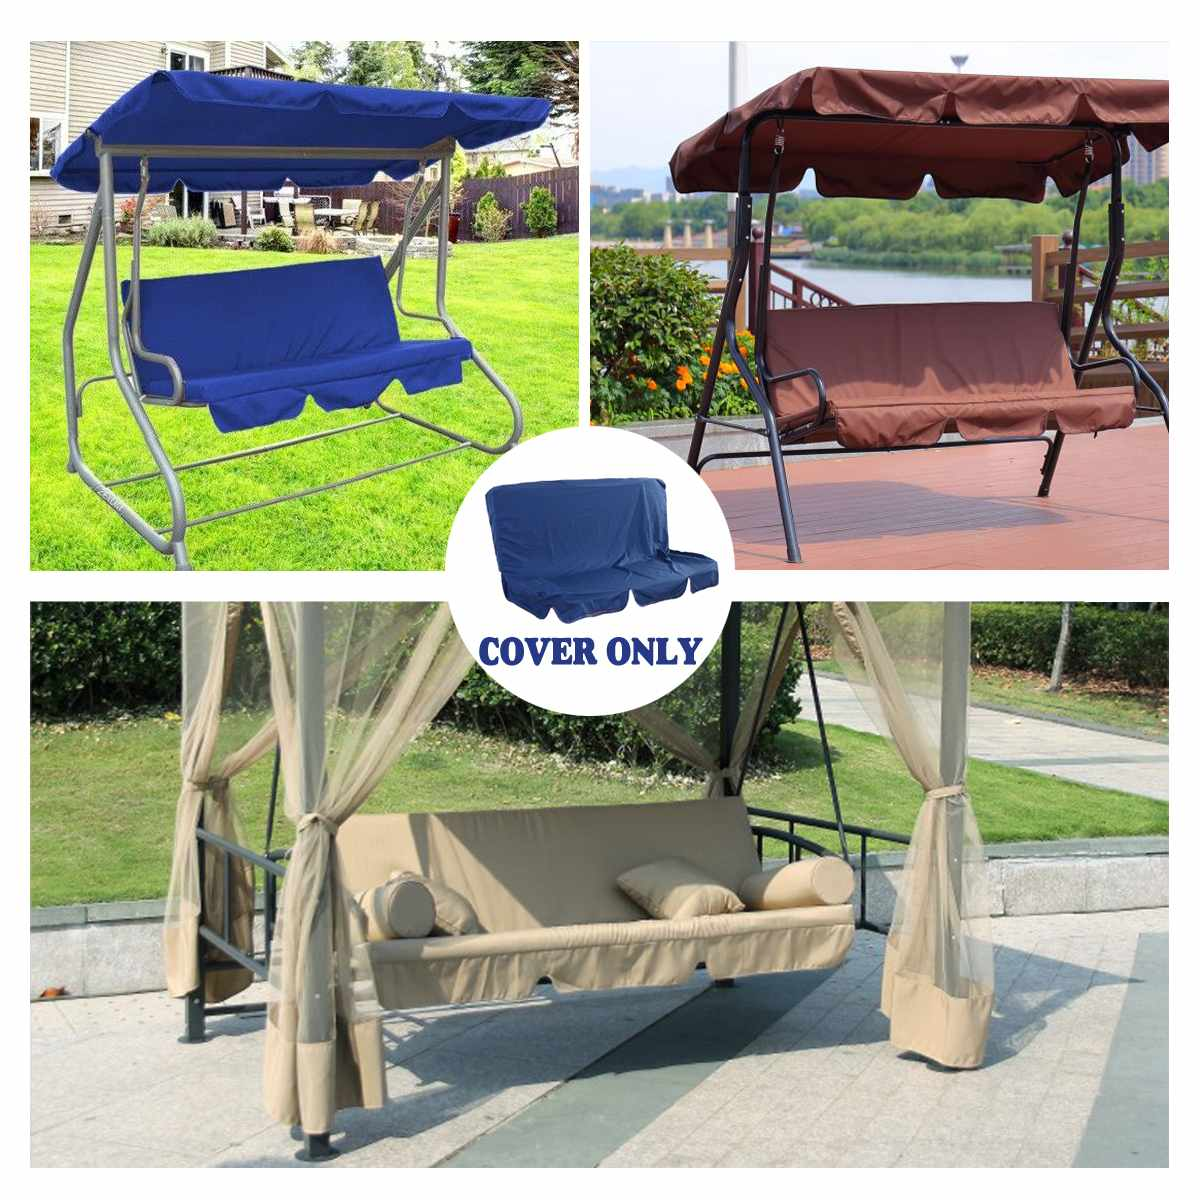 104*47*47cm/153*52*52cm Swing Cushion 5 Colors Waterproof Dustproof Chair Replacement Canopy Spare Fabric Cover Dust Covers